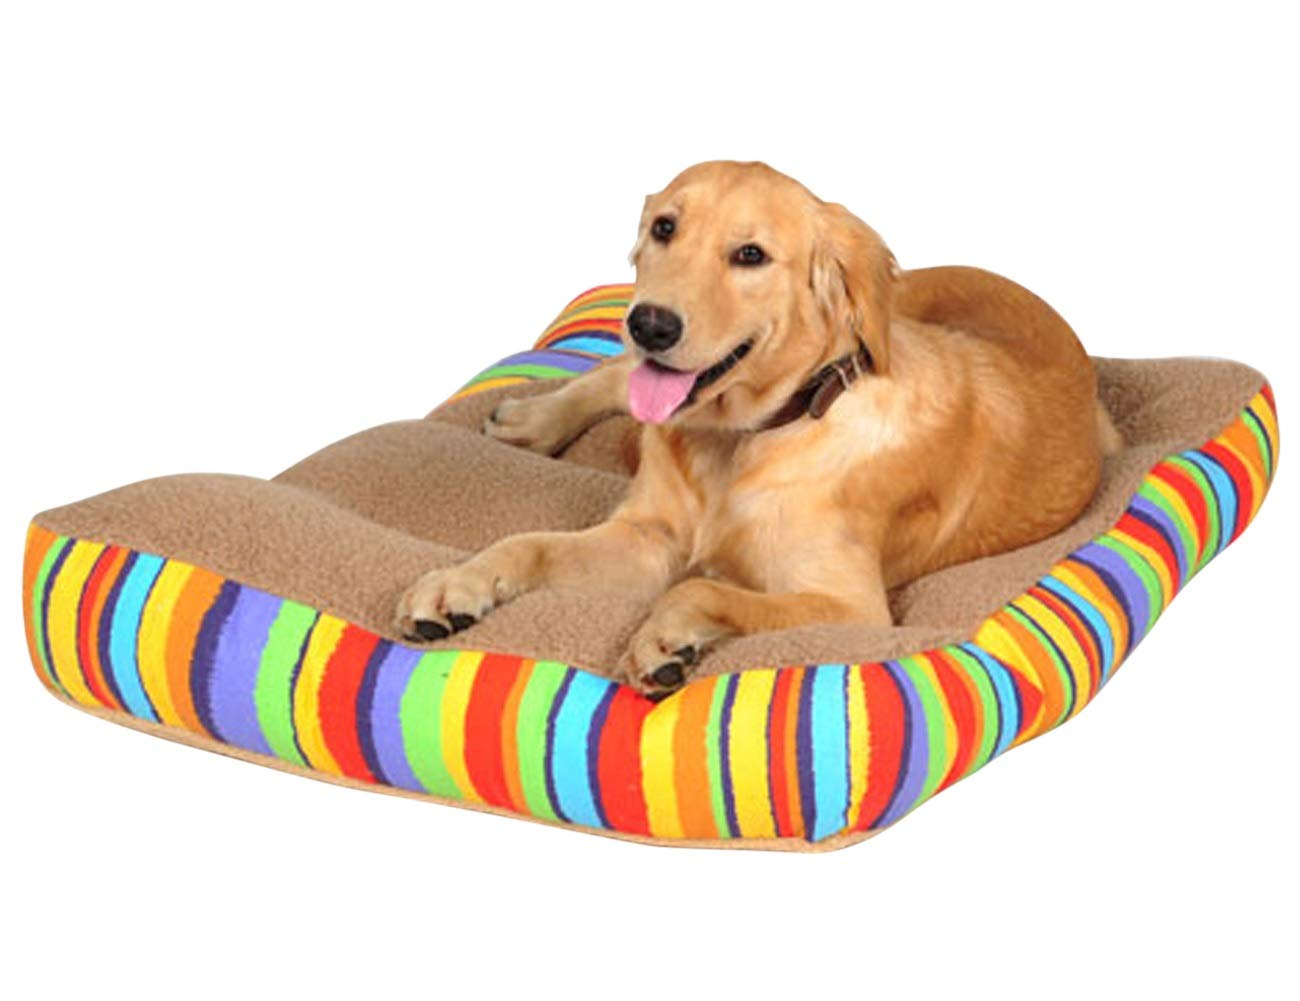 M Preferhouse Pet Dog Bed for Small Medium Large Dogs Cats 29.5L x 19.7W x 4.7H Inch